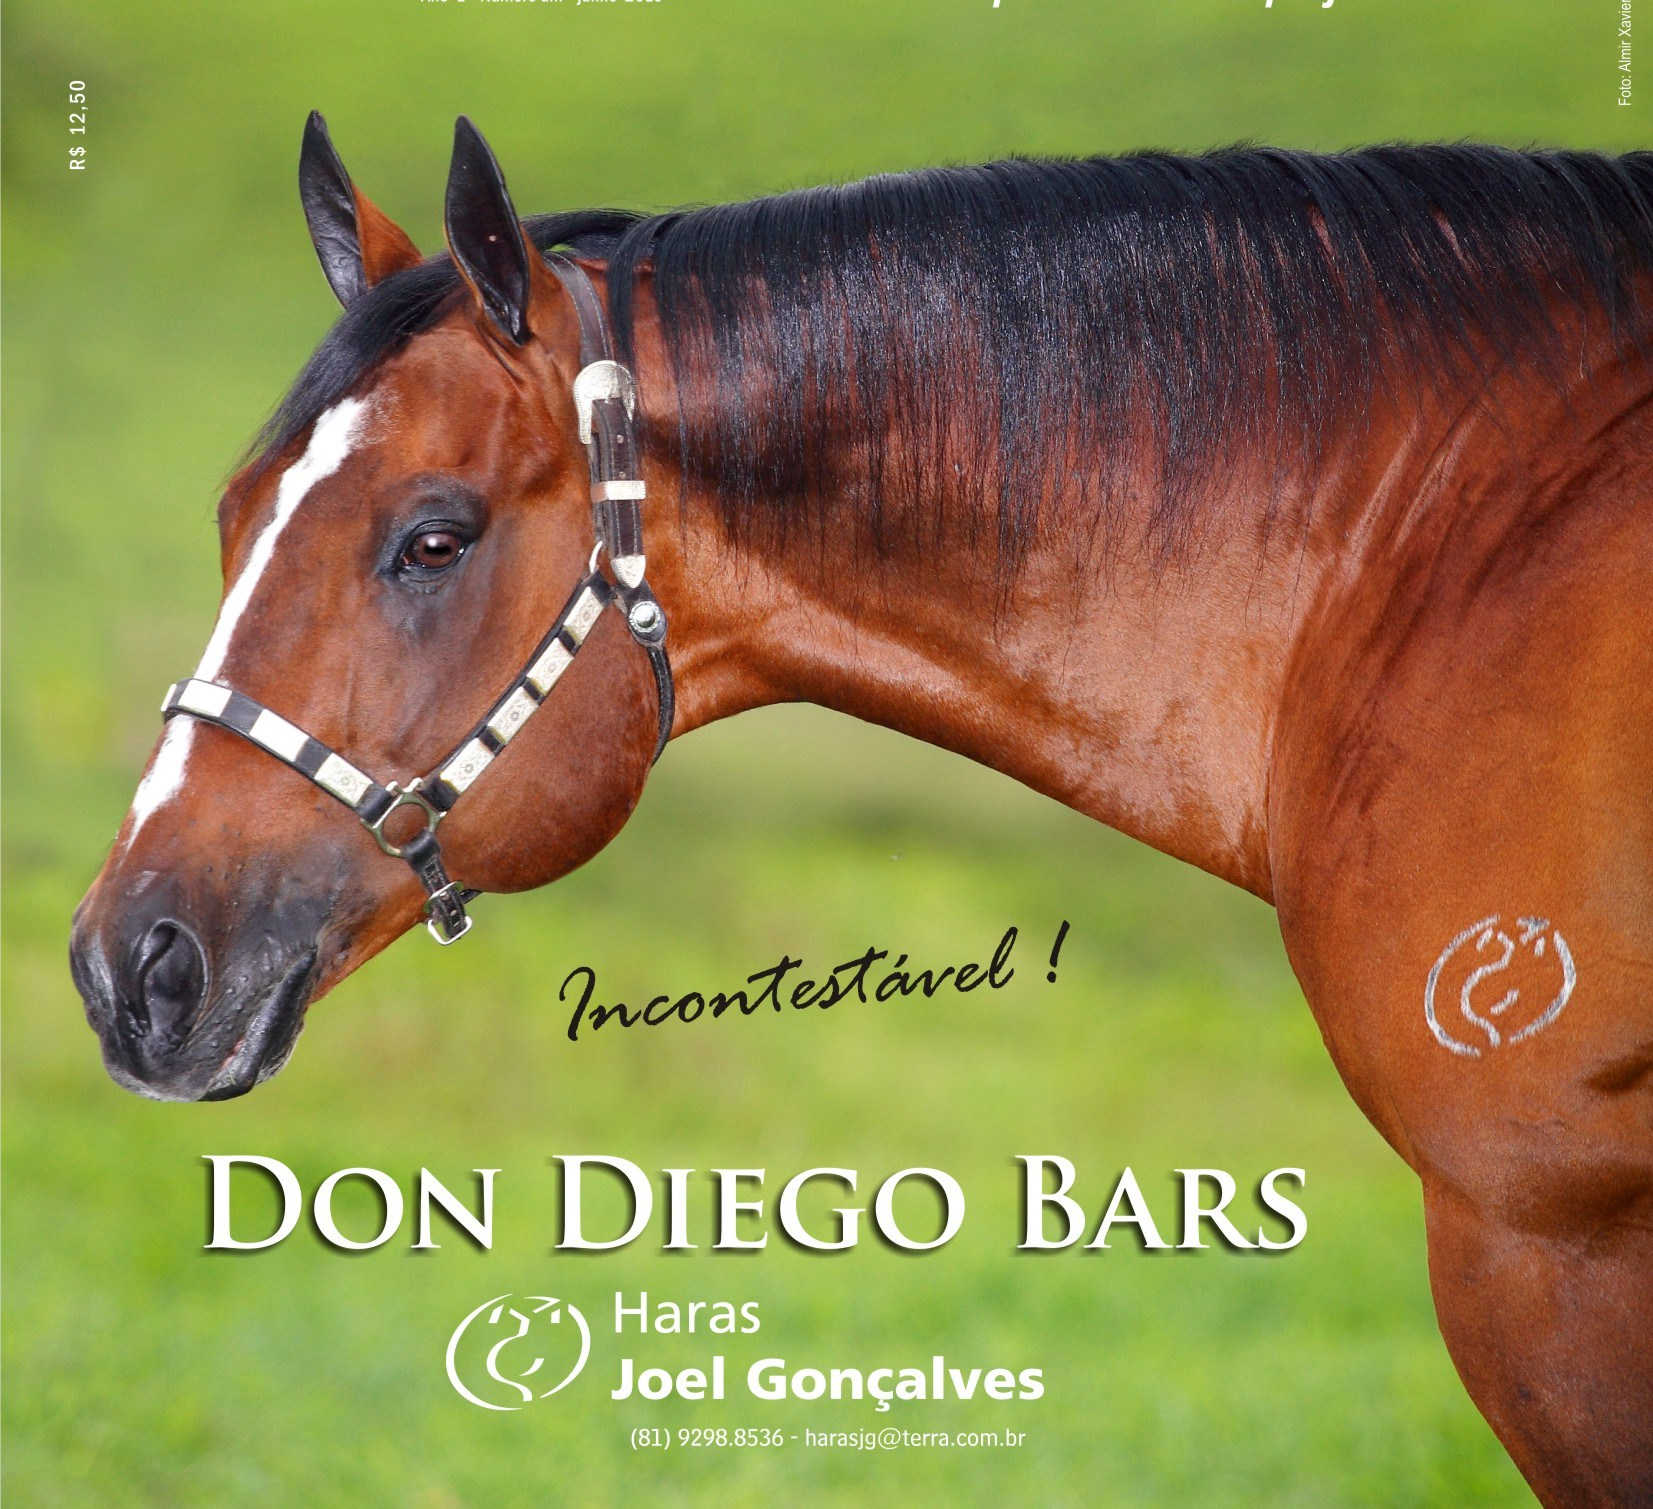 Don Diego Bars